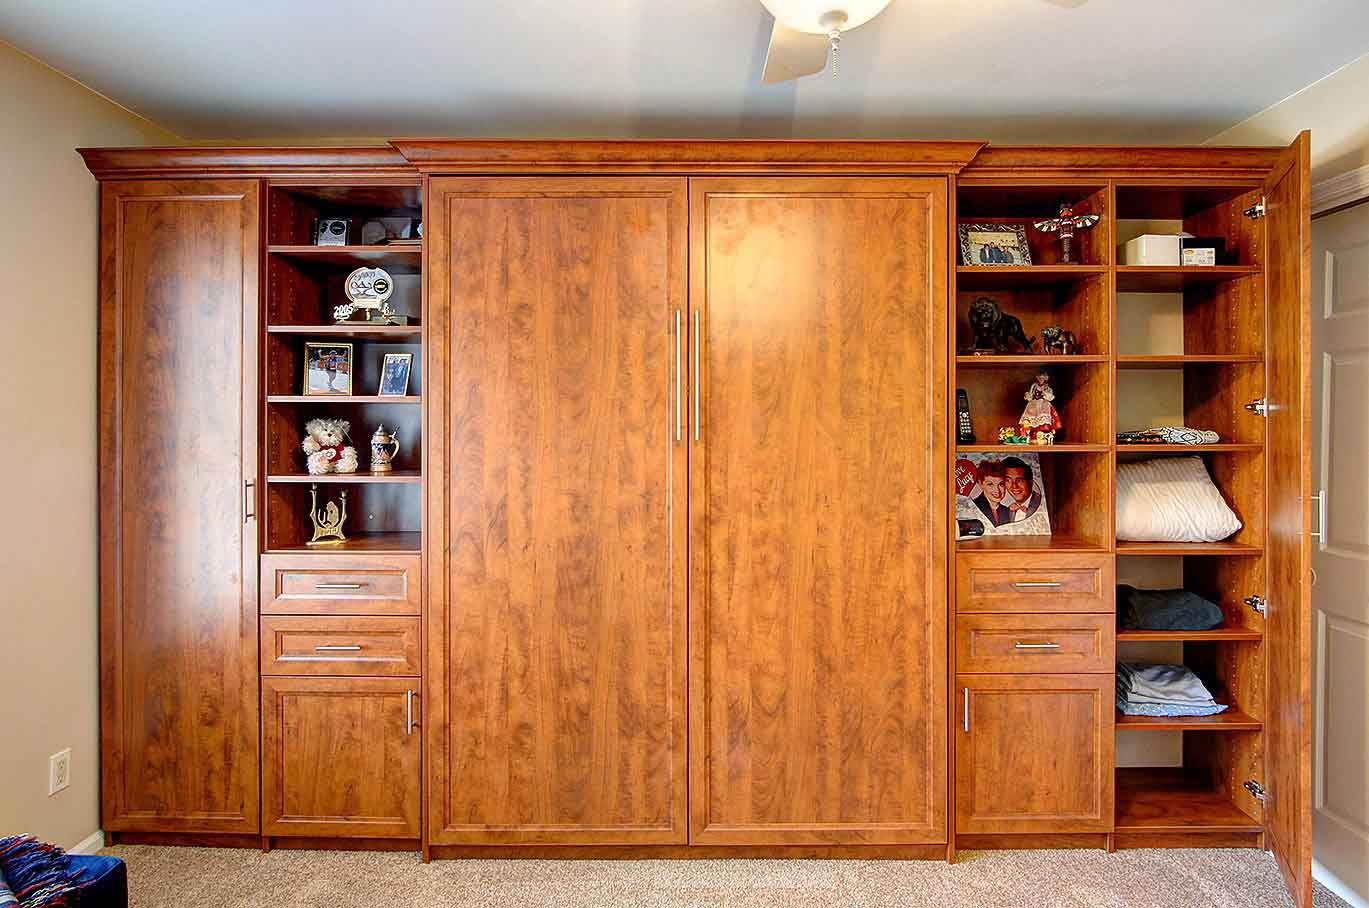 Custom furniture wall unit piece with queen-sized Murphy Bed vertically stored